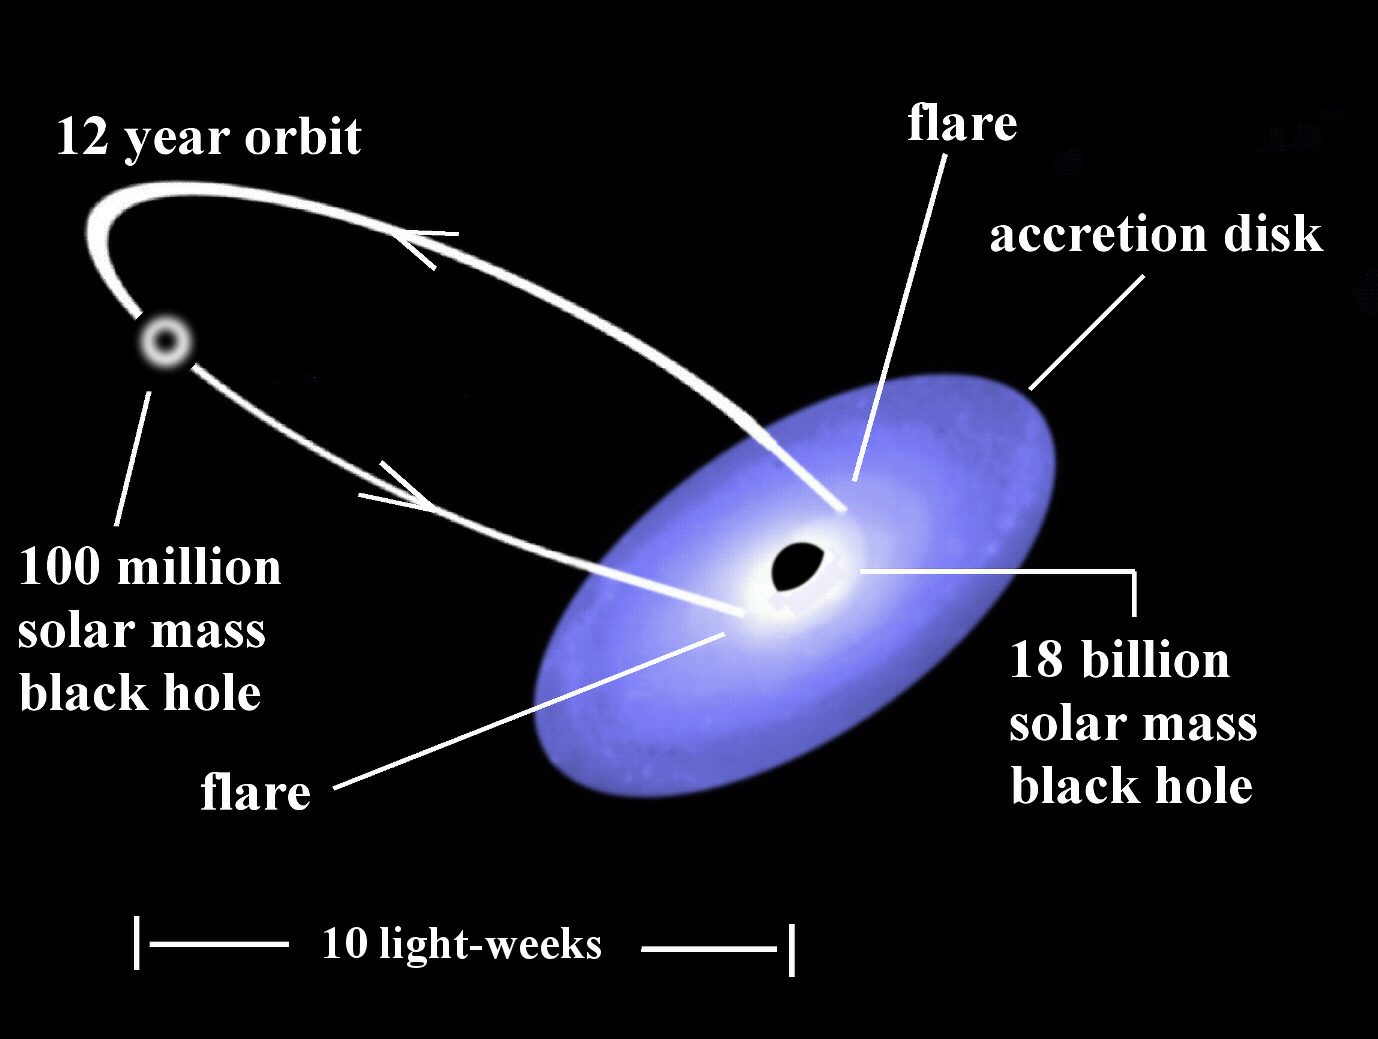 An illustration of the binary black hole system in OJ287. The predictions of the model are verified by observations. Image Credit: Gary Poyner, UK.